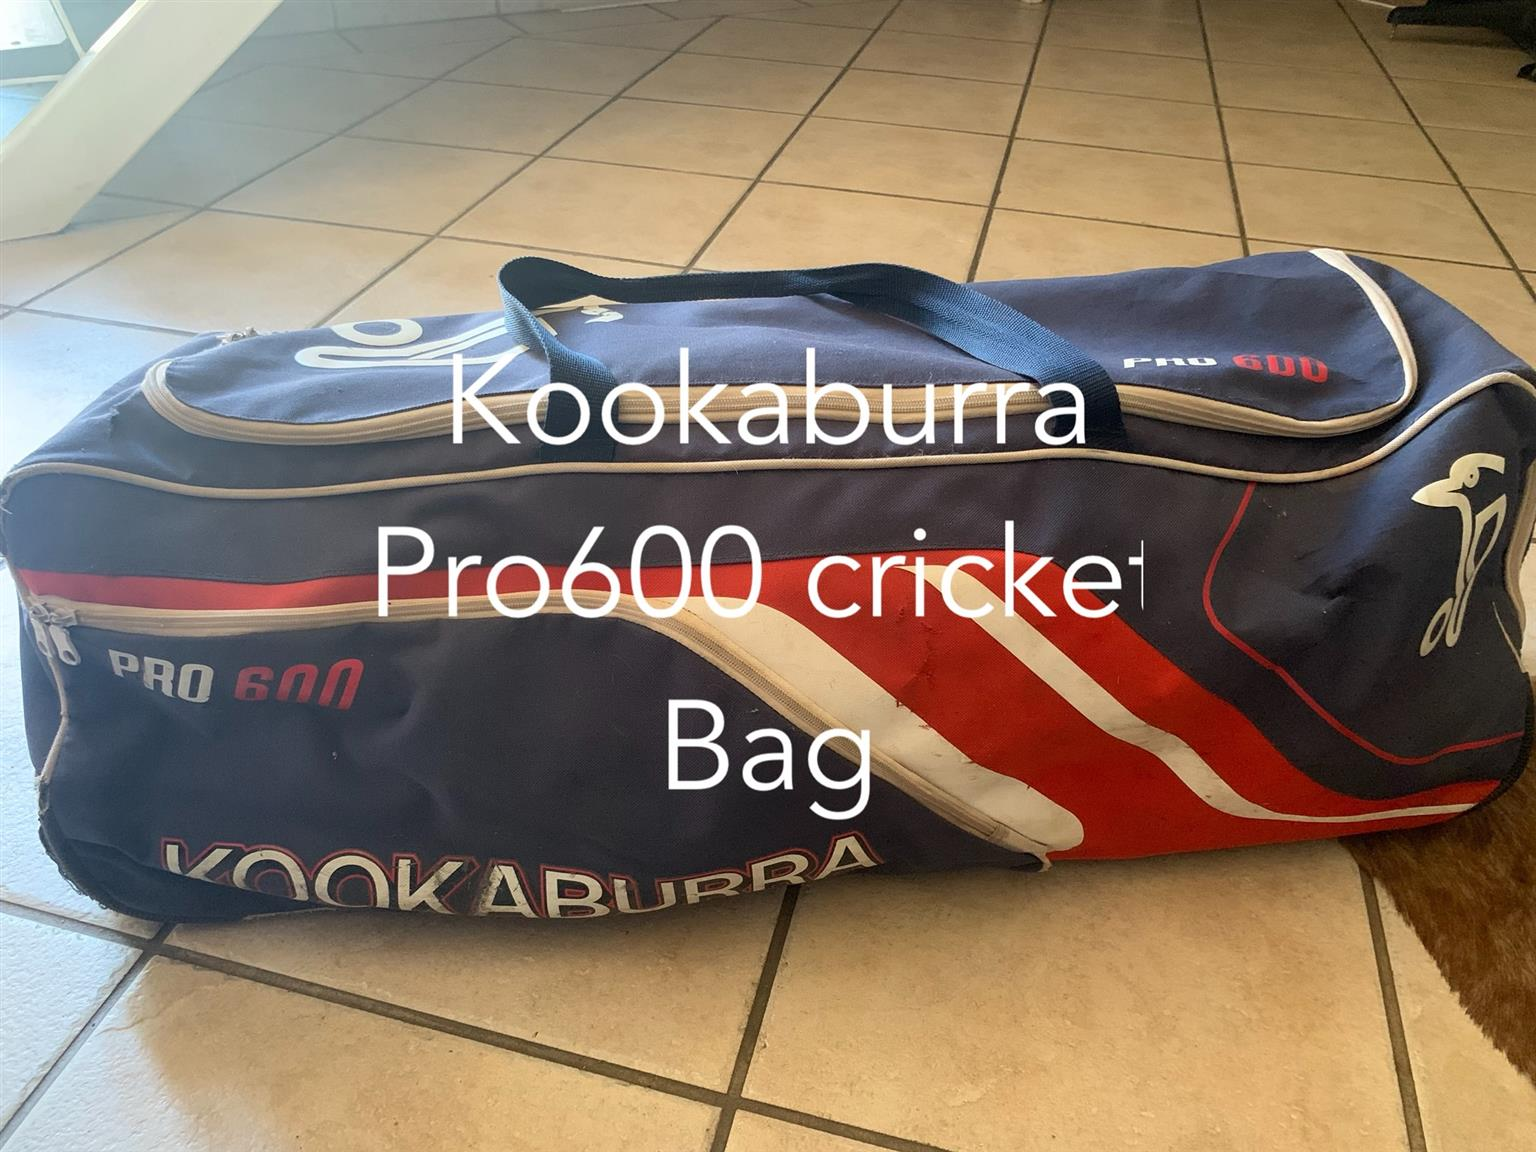 Cricket gear for sale